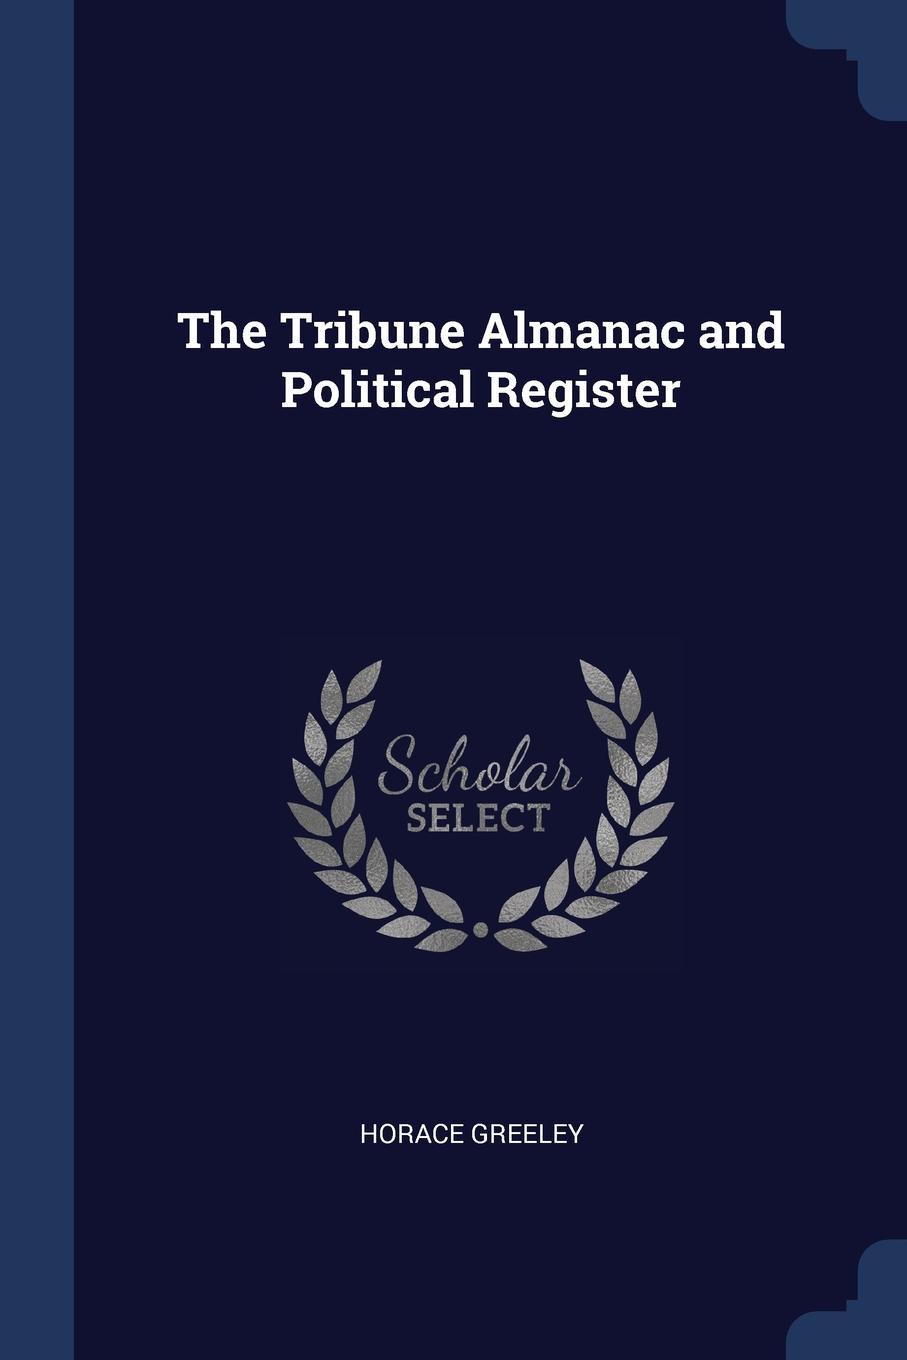 Horace Greeley The Tribune Almanac and Political Register